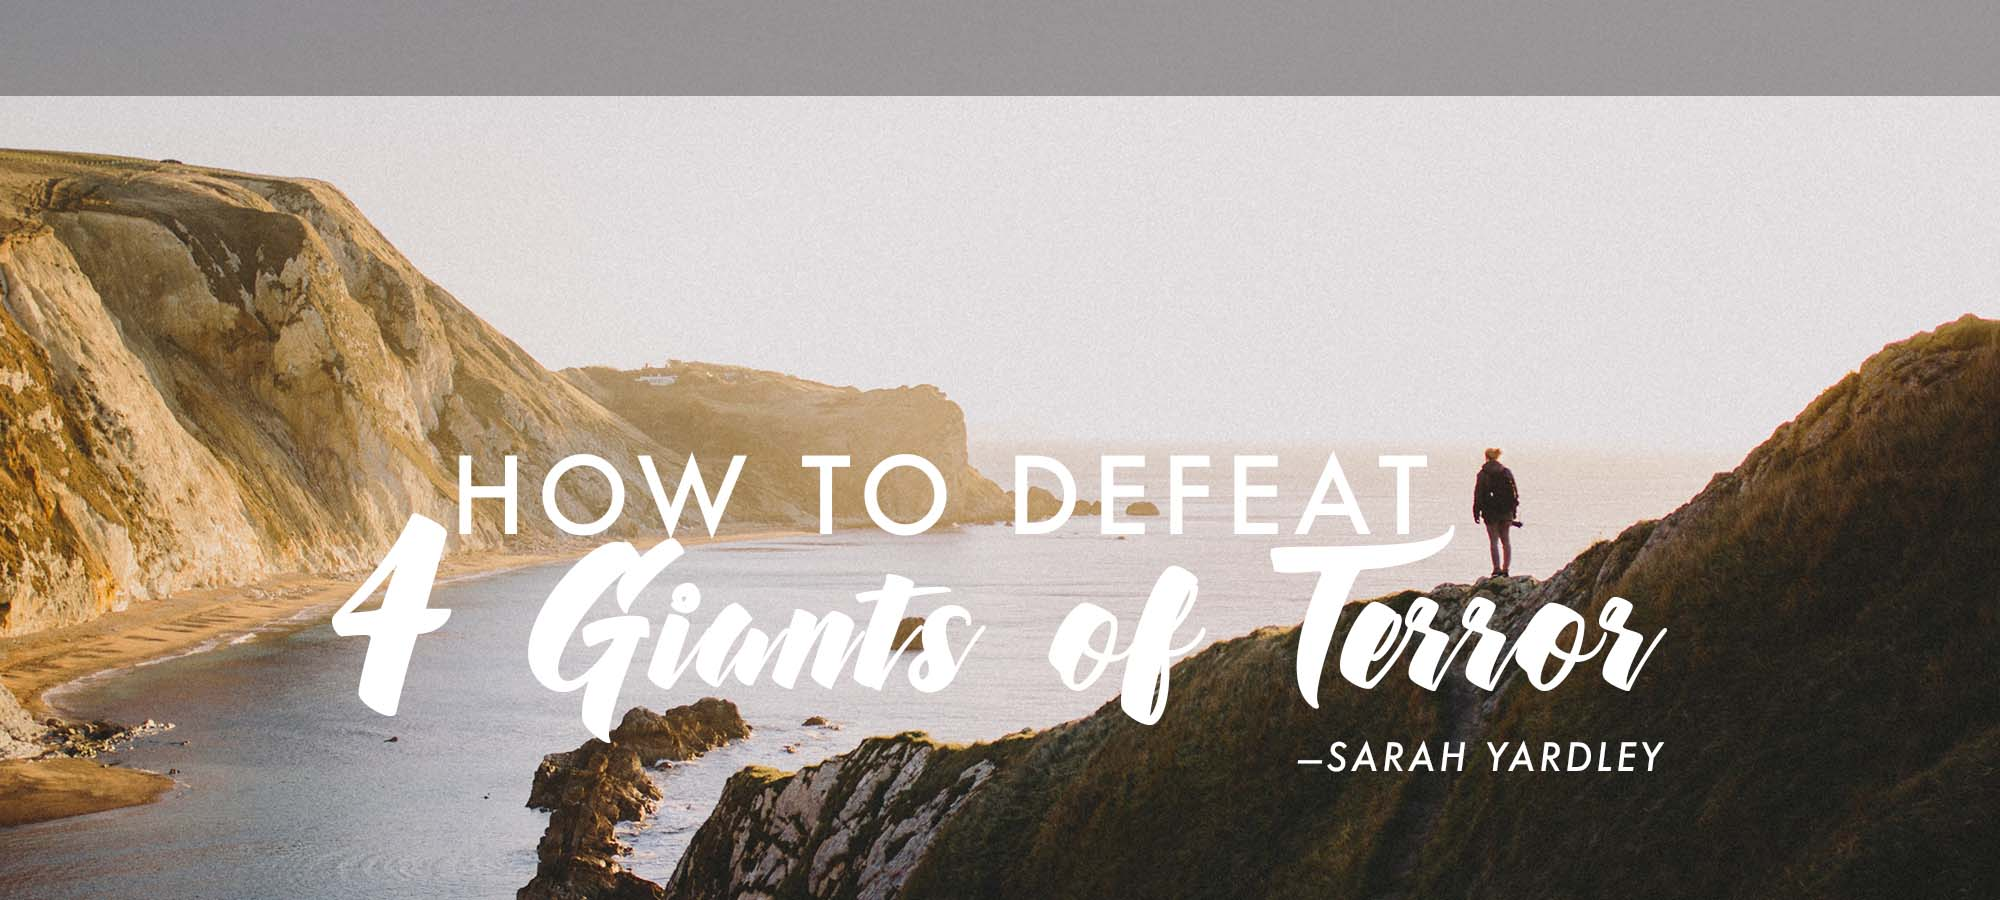 How to Defeat Four Giants of Terror